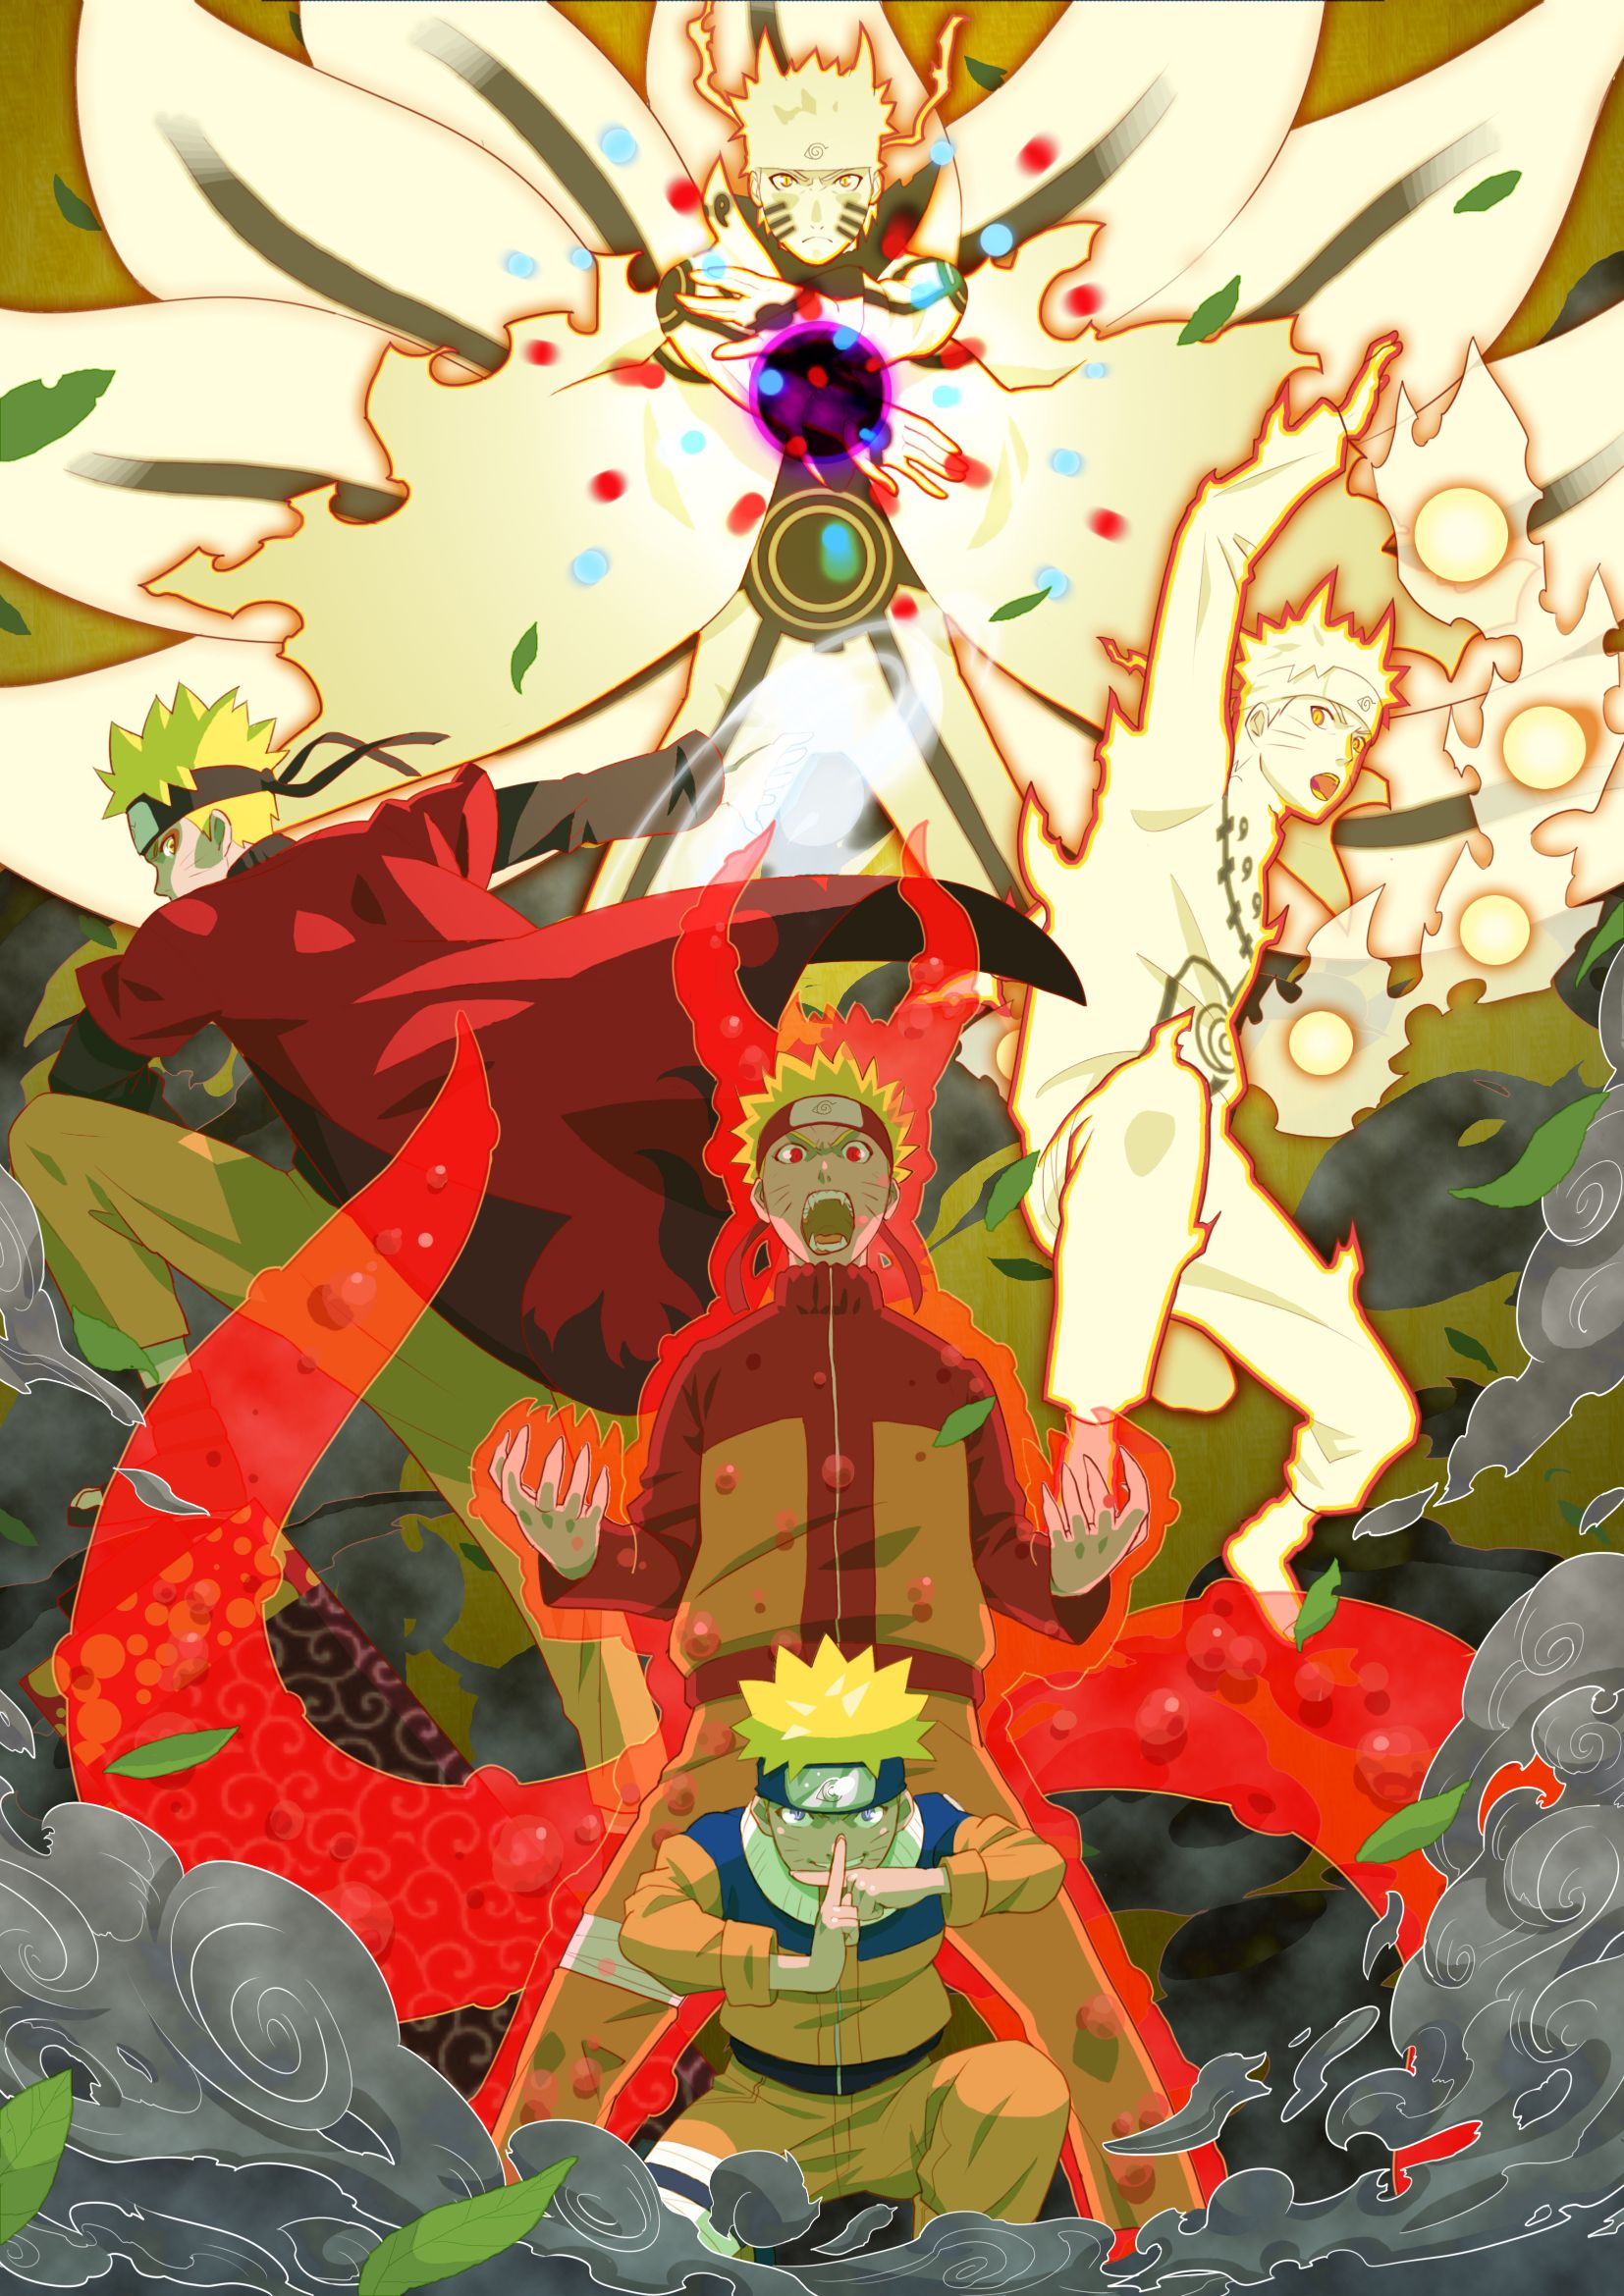 Naruto Uzumaki Sage Mode Wallpapers 1080p Anime Anime Naruto